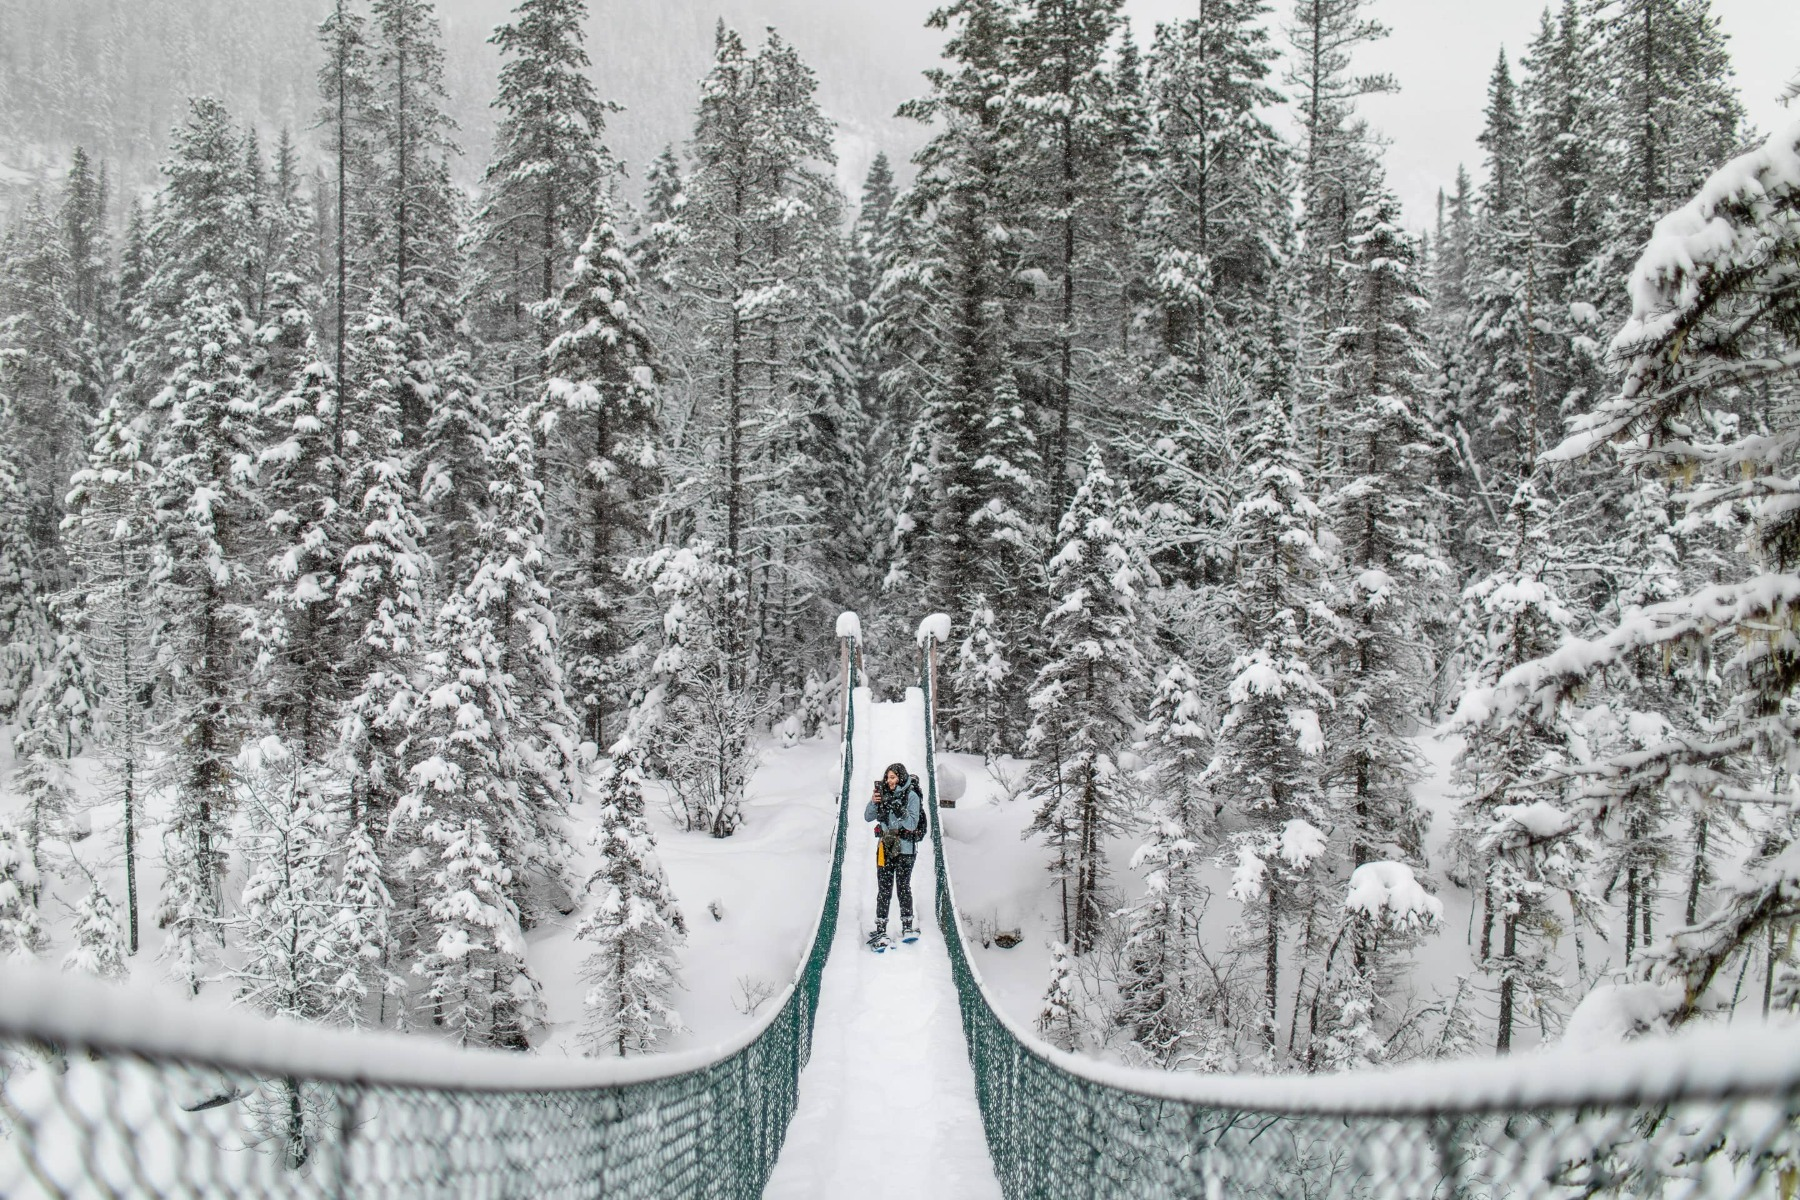 A woman with a hiking pack and snowshoes stands on a long suspension bridge in a snow storm in the mountains.